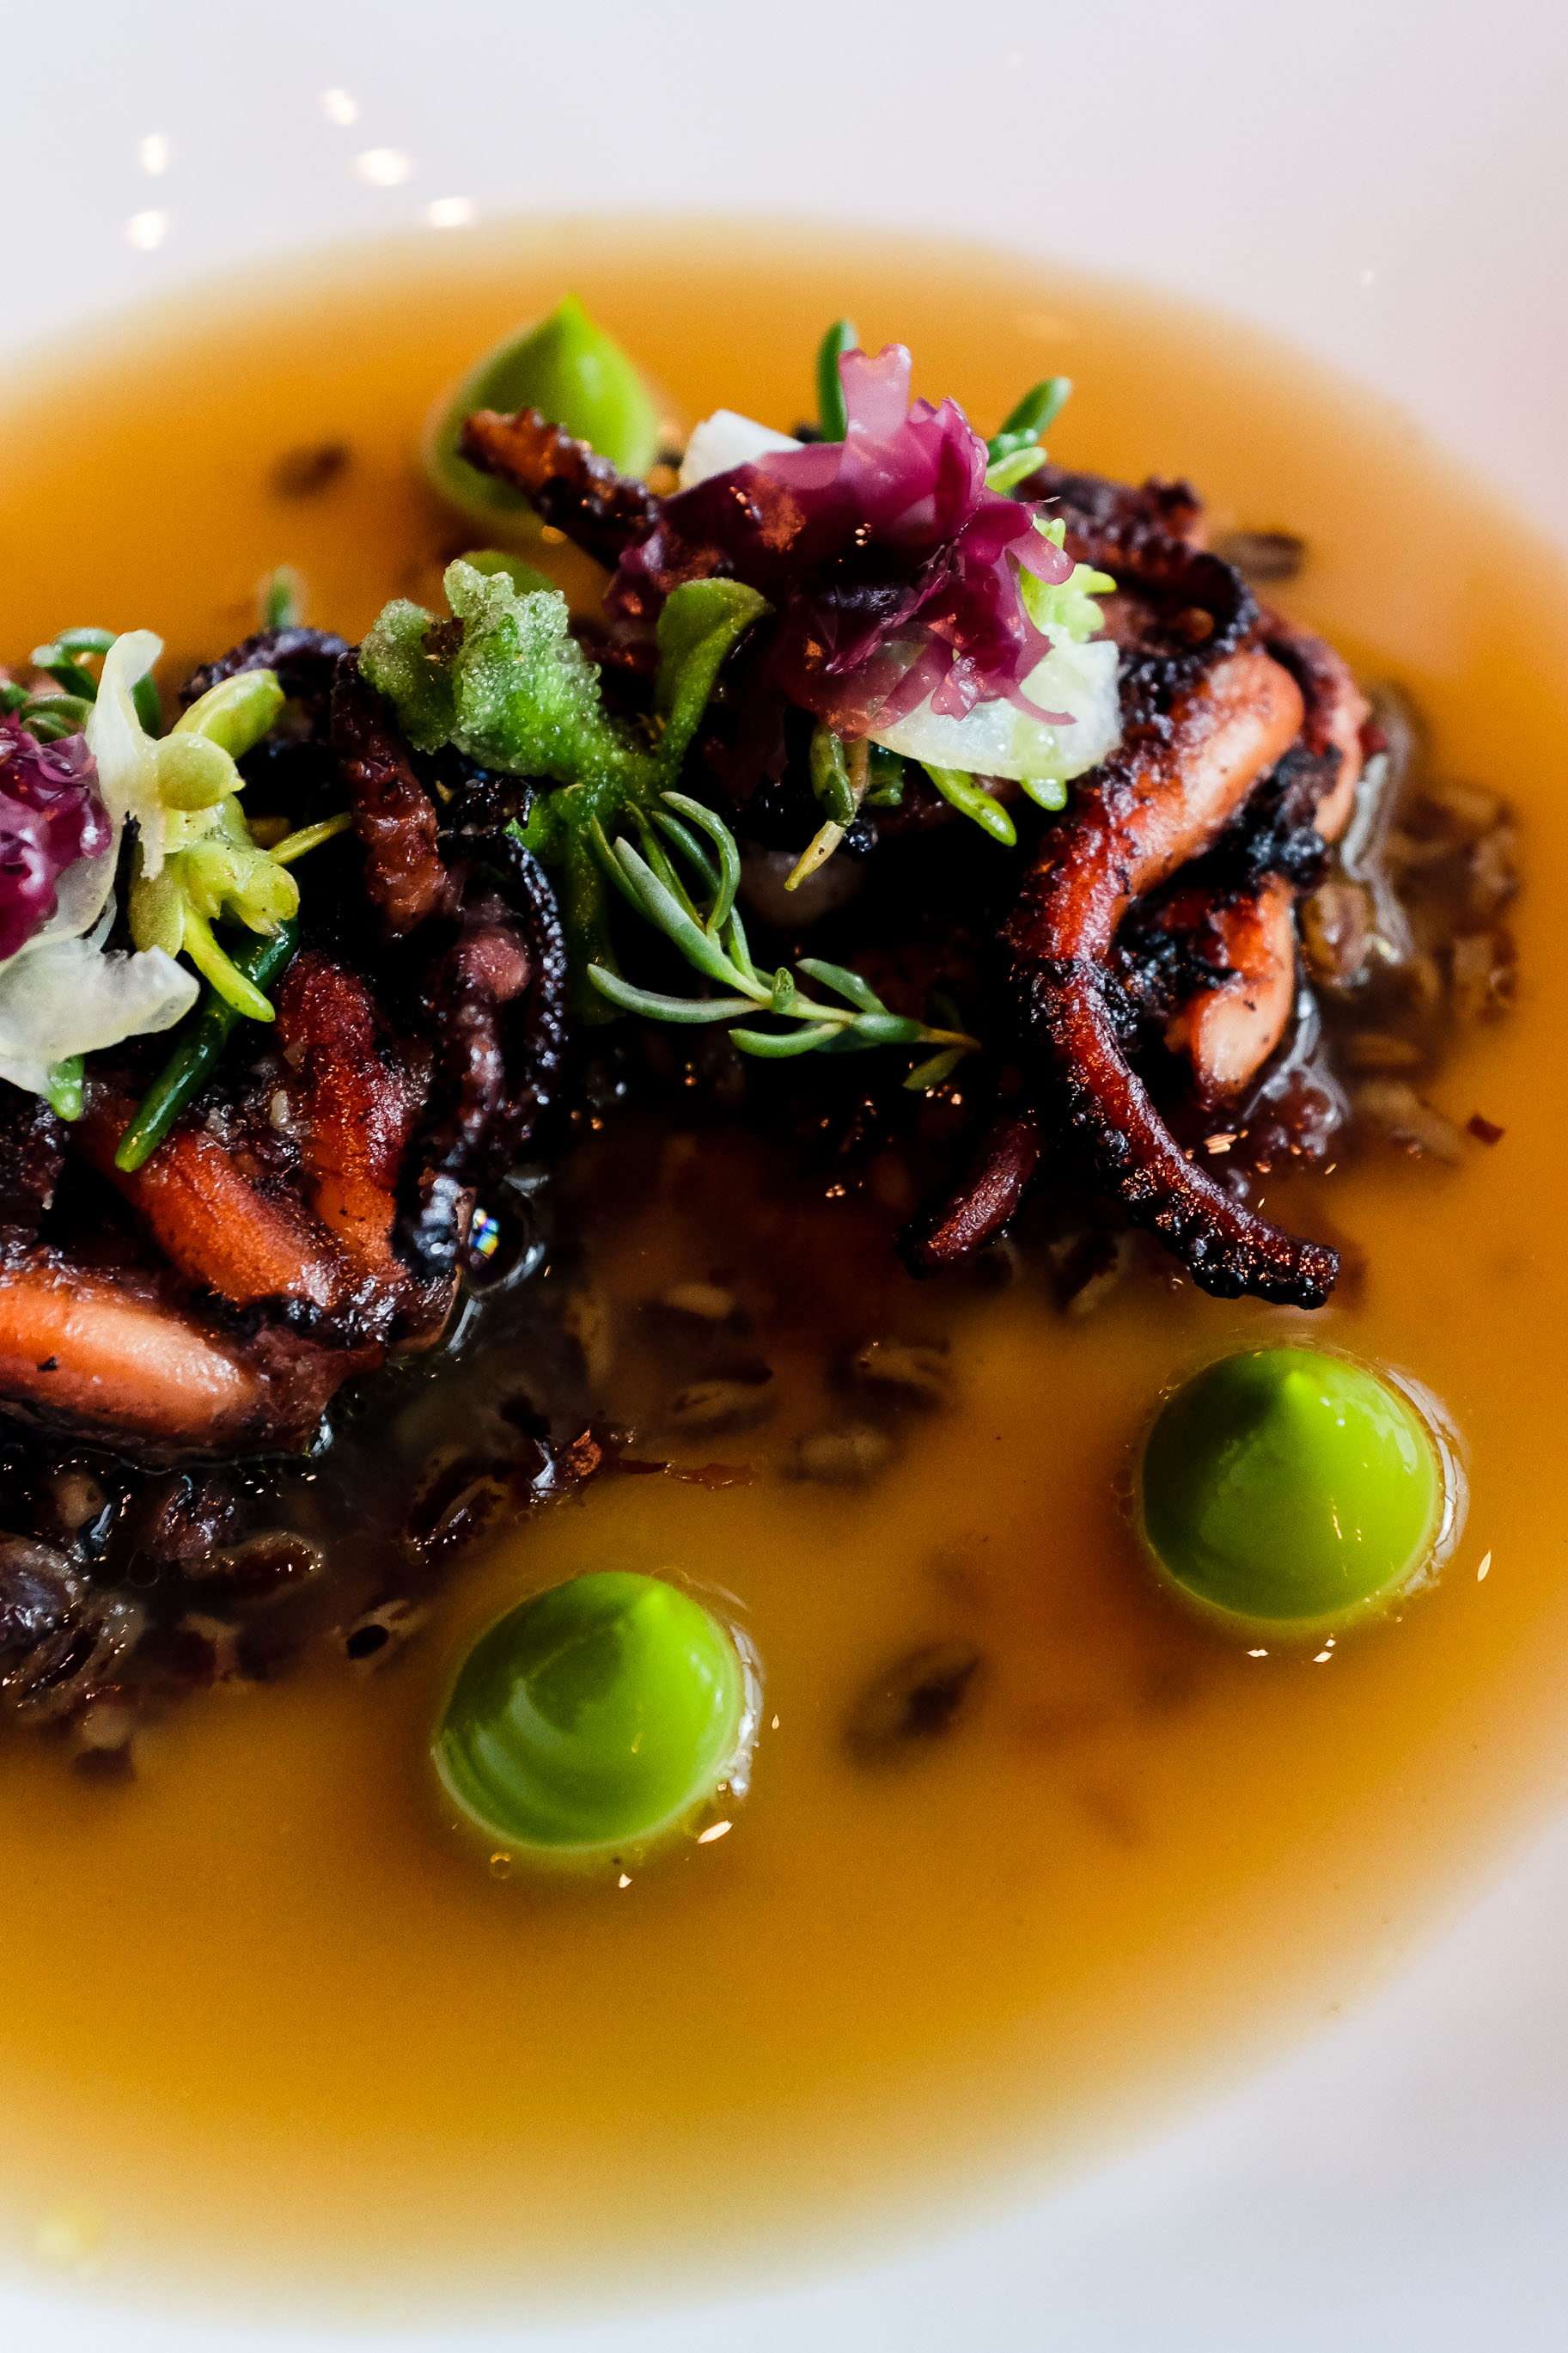 Frumenty (c.1390) -Grilled octopus, spelt, pickled red moss, chervil emulsion & smoked sea broth $38.00